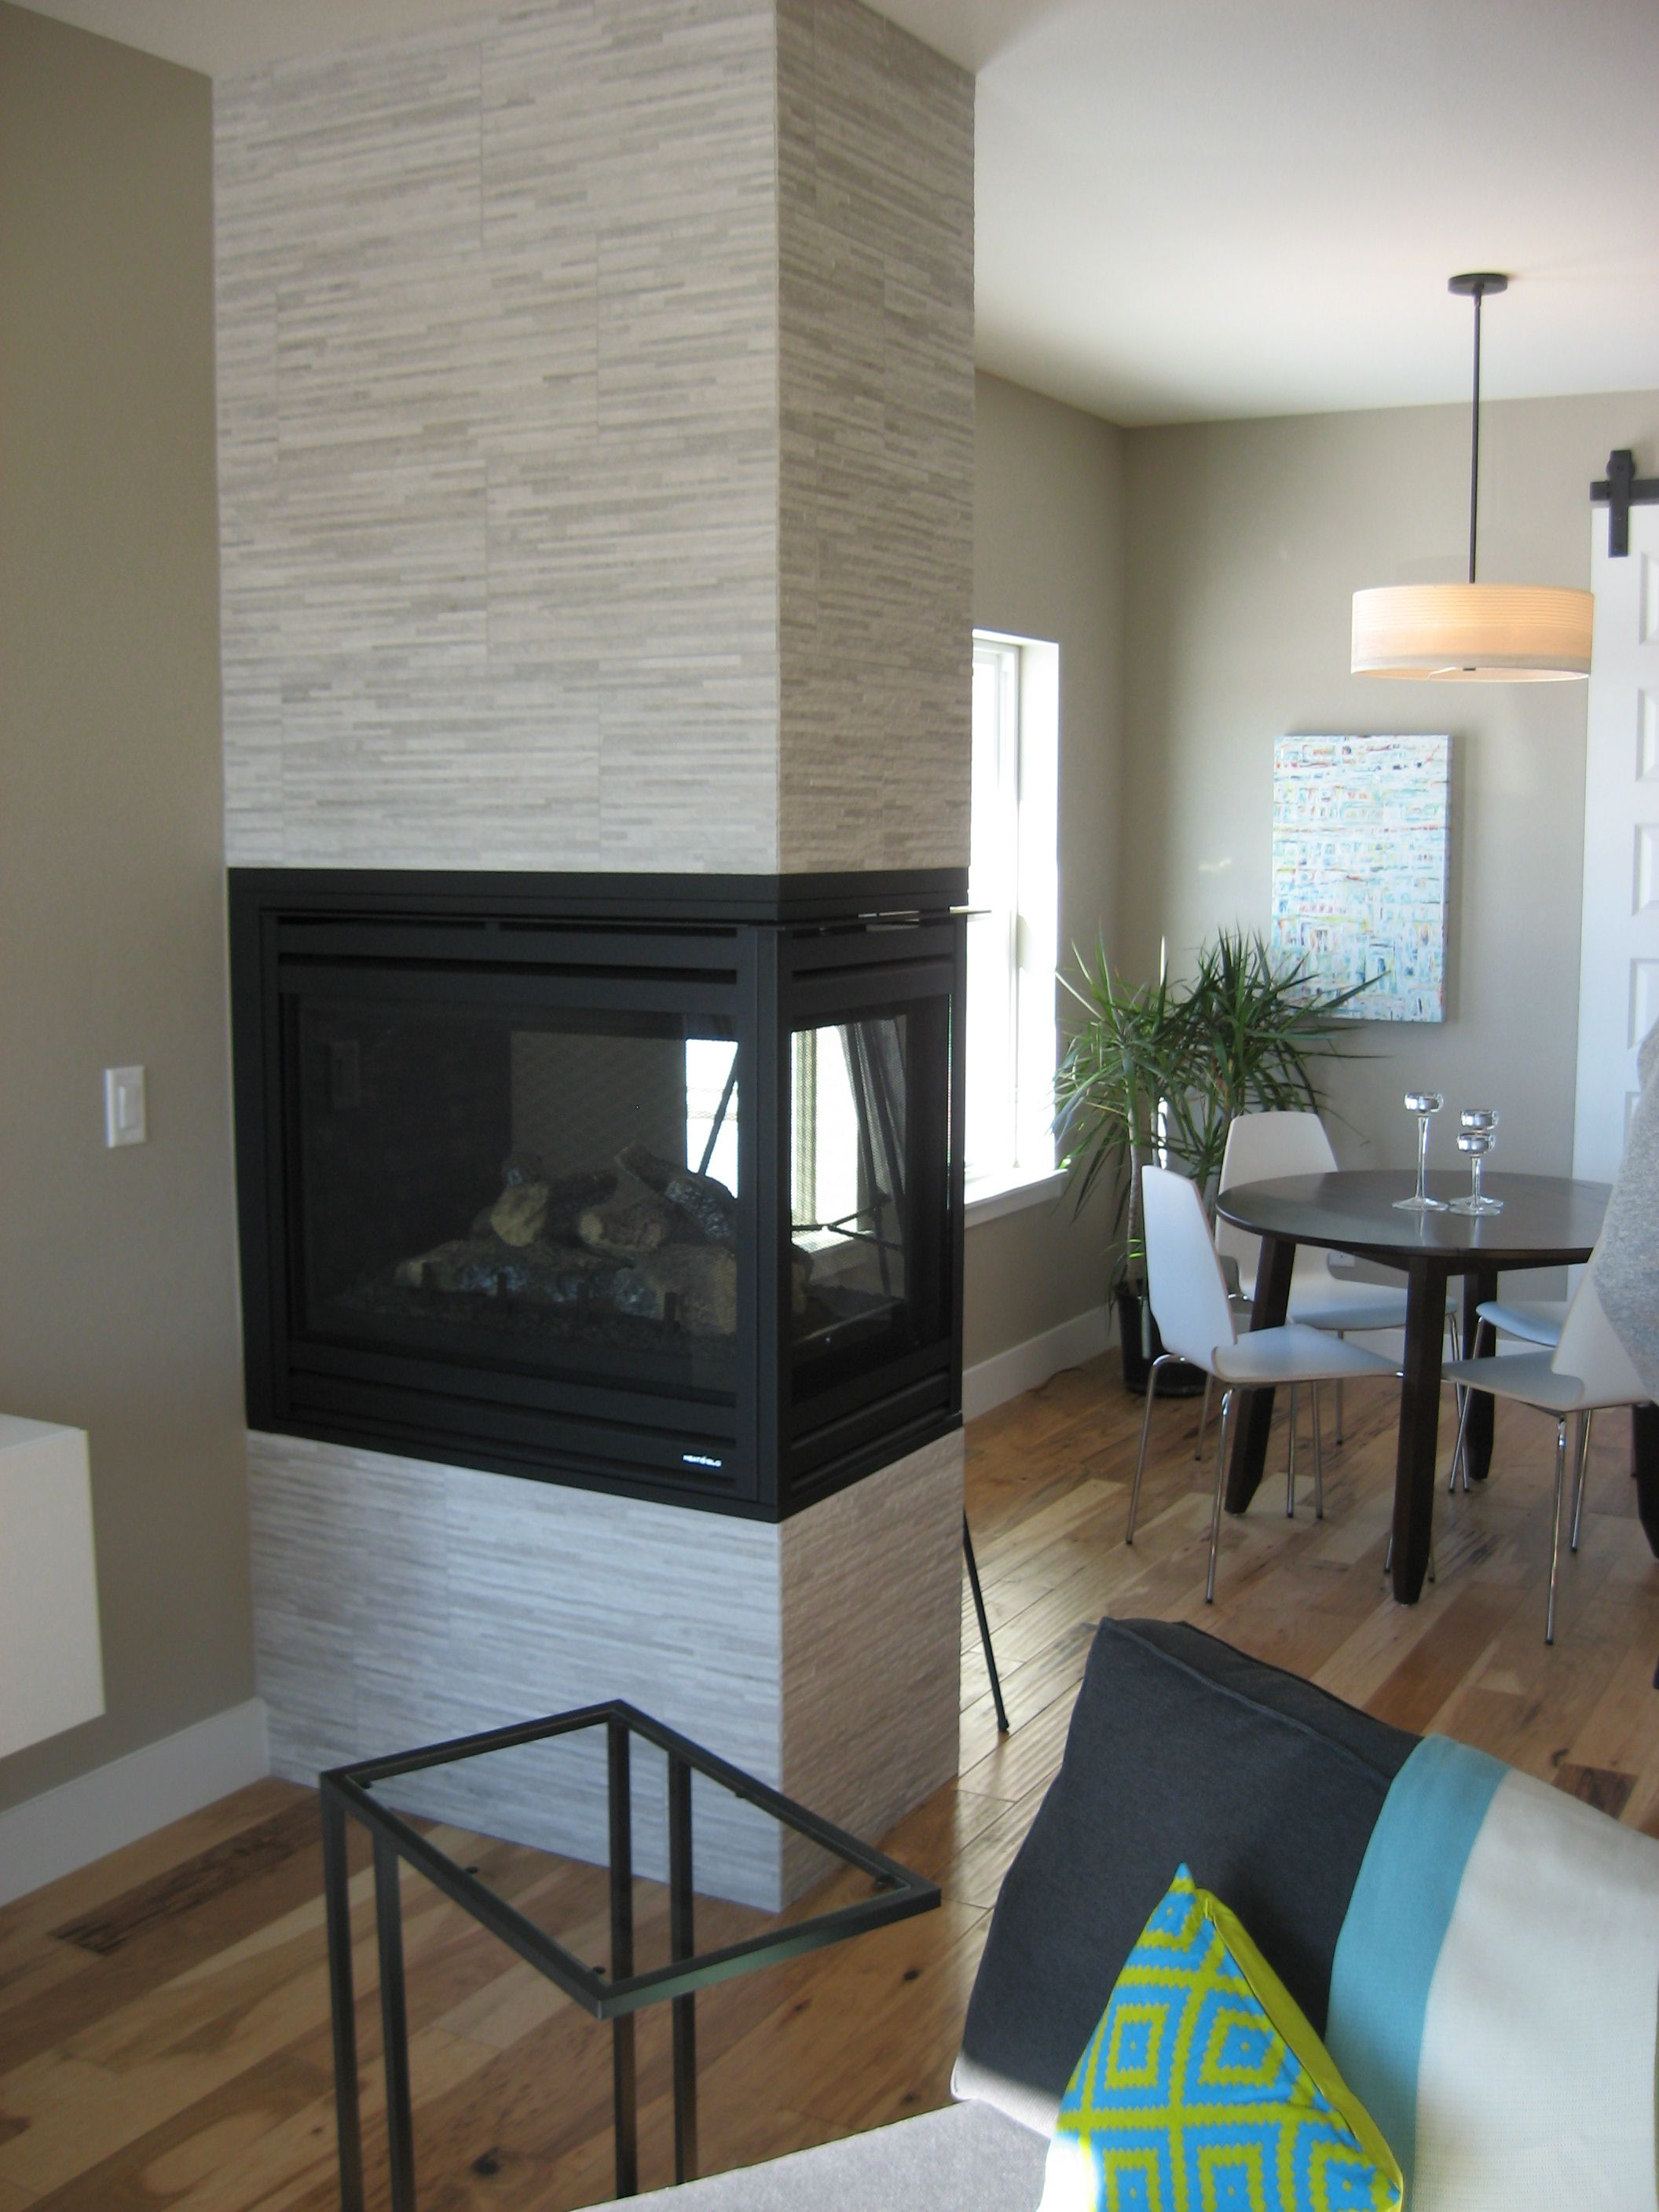 3 Sided Fireplace Focal Point Interior Room Fr